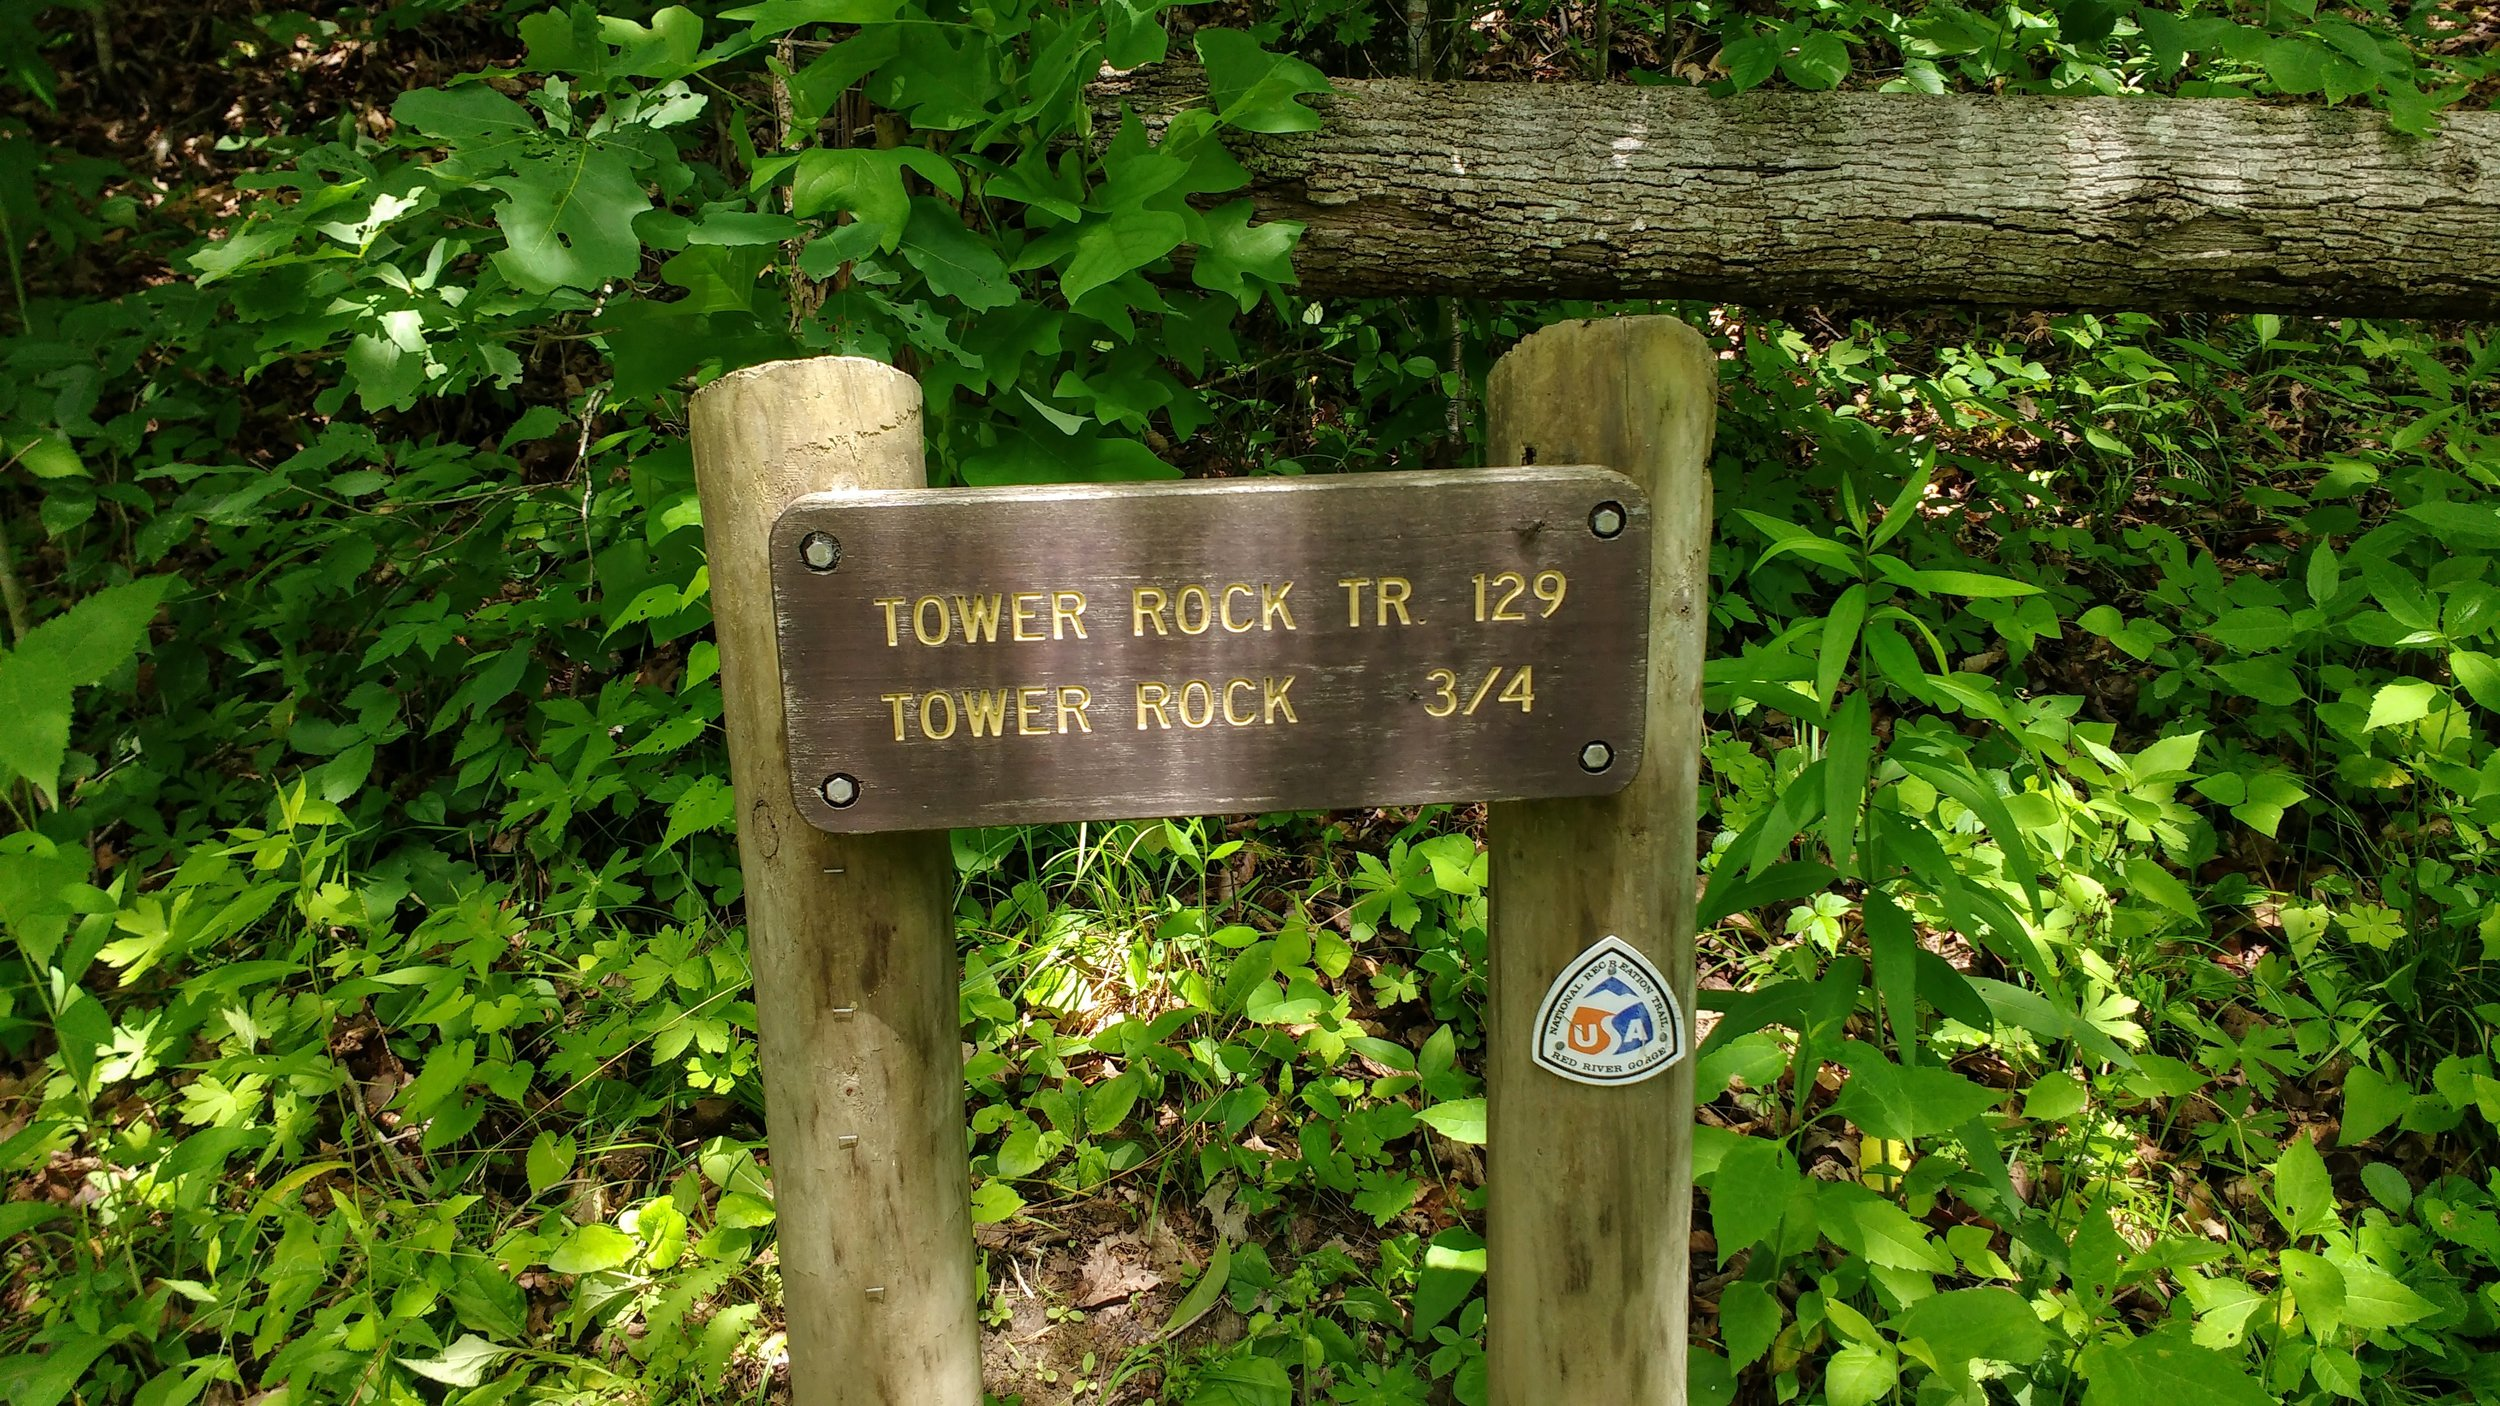 Sign for Tower Rock Trail